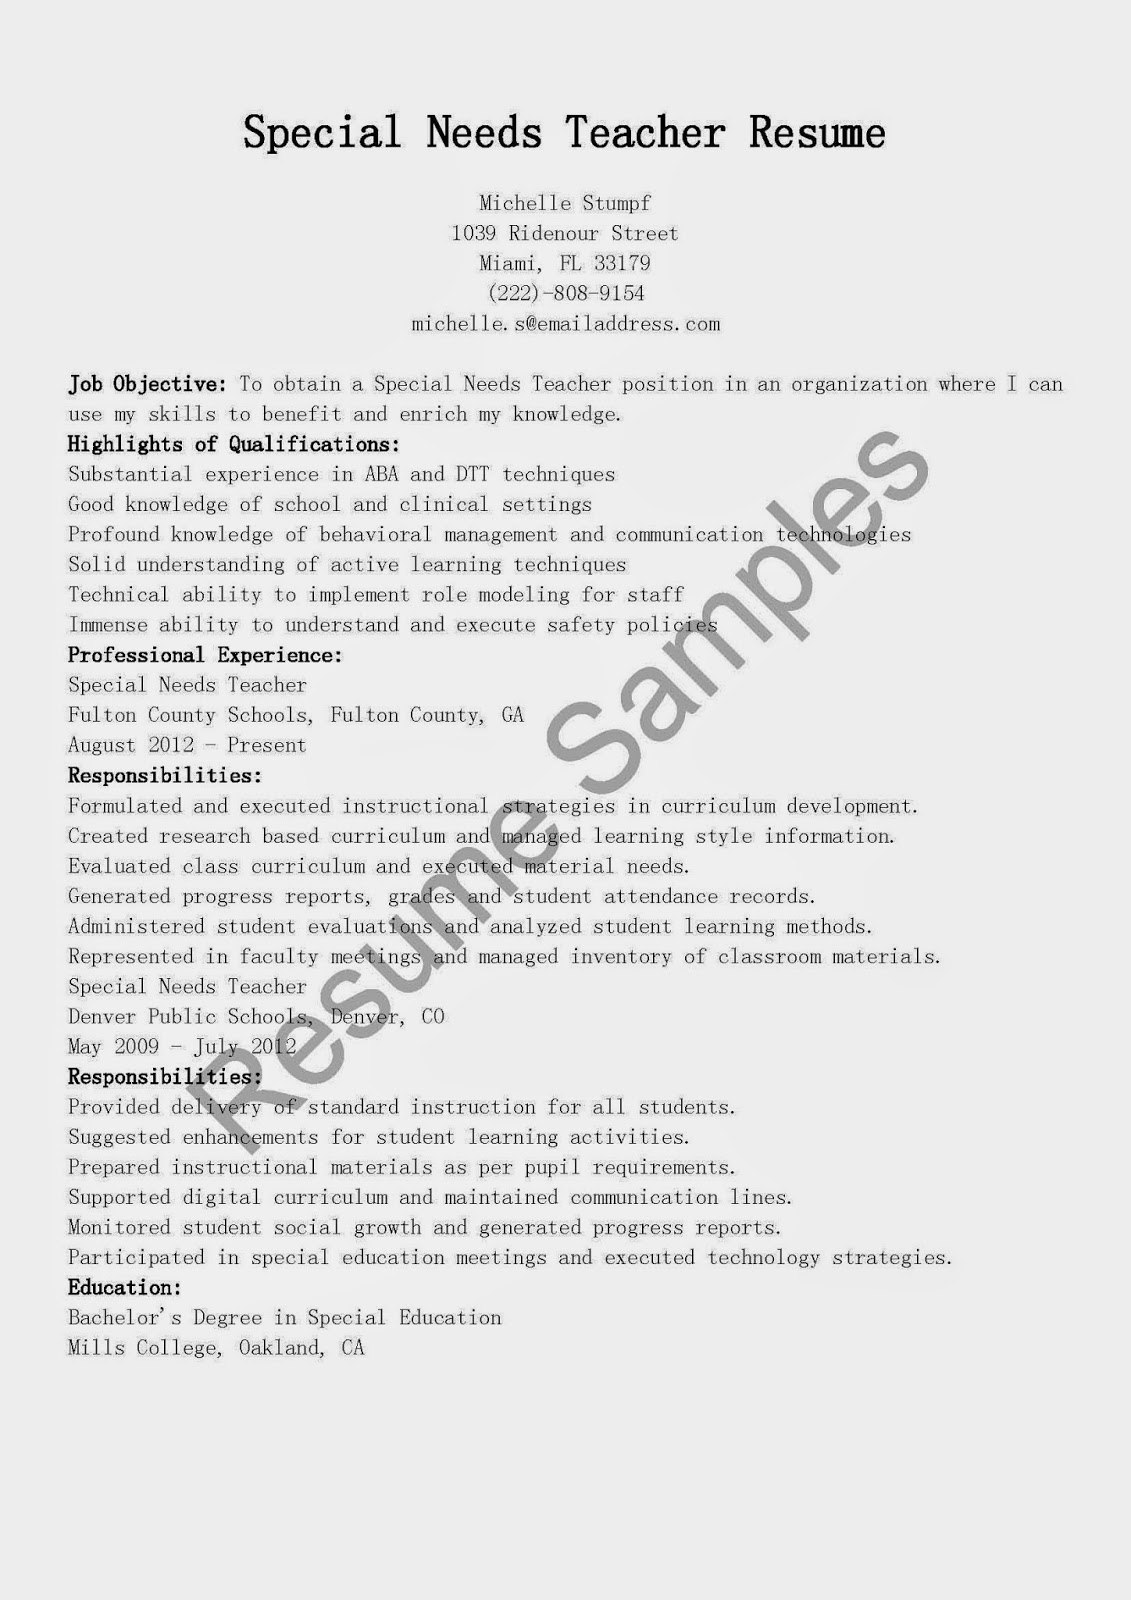 Create A Better Resume In Minutes Get A Better Job Resume Samples Special Needs Teacher Resume Sample